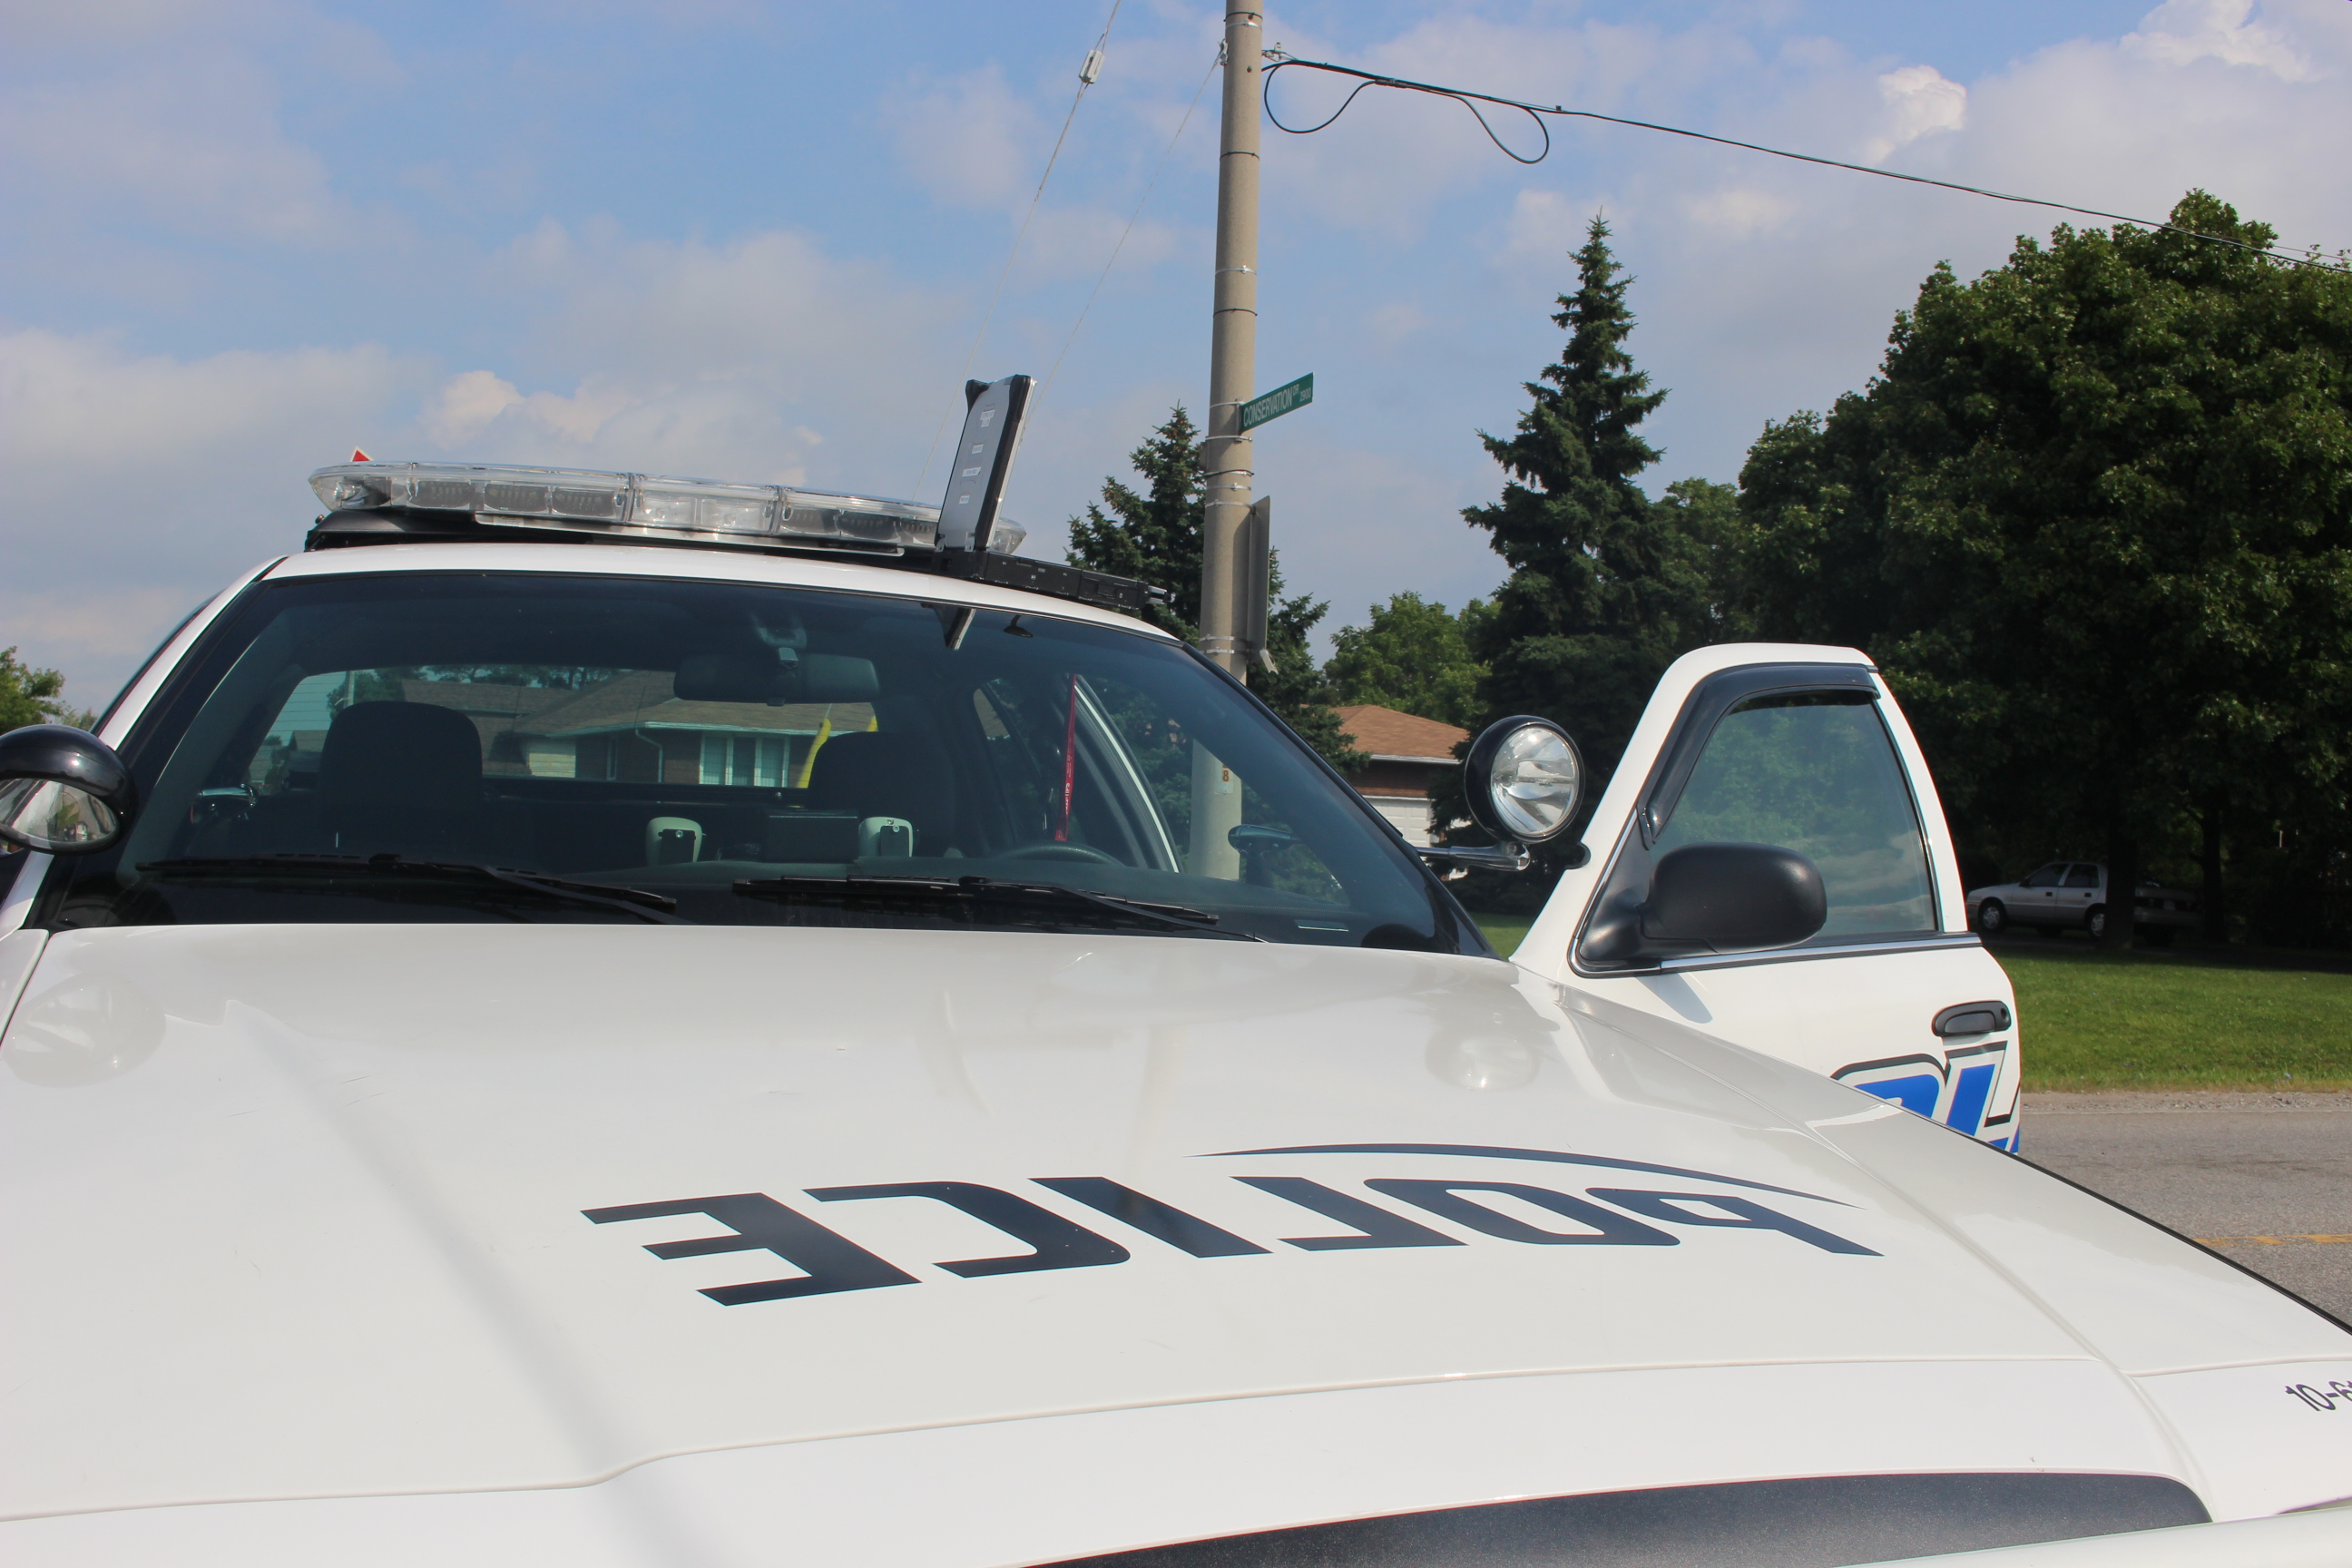 Charges After Alleged Threats With BB Gun